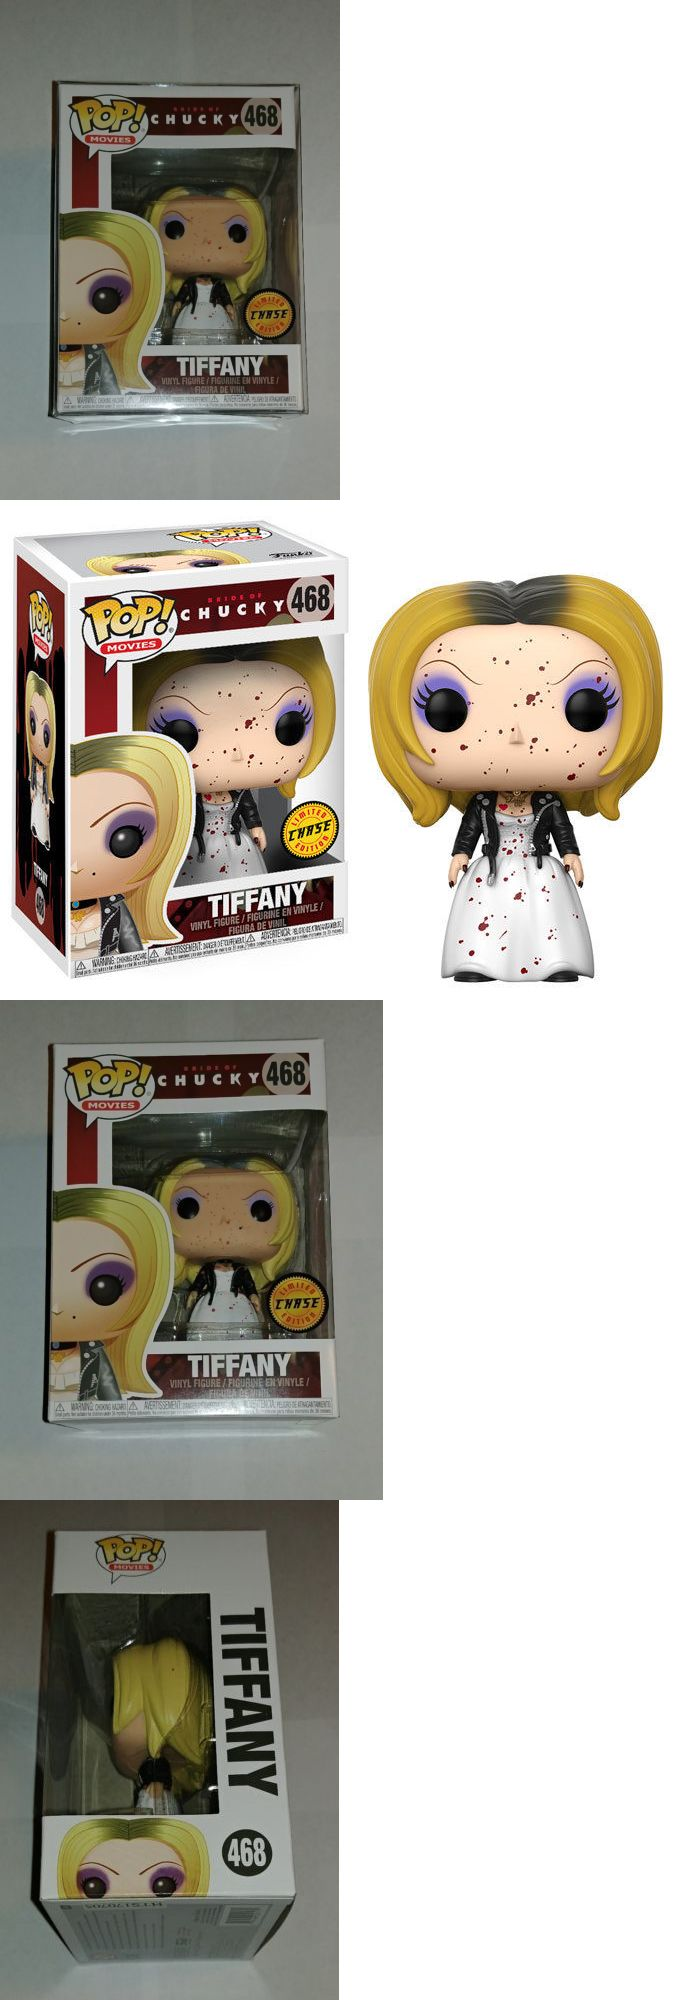 Action Figures 7114: Funko Pop Movies Horror Bride Of Chucky Tiffany Chase Nib Rare W Pop Protecter -> BUY IT NOW ONLY: $39.95 on eBay!